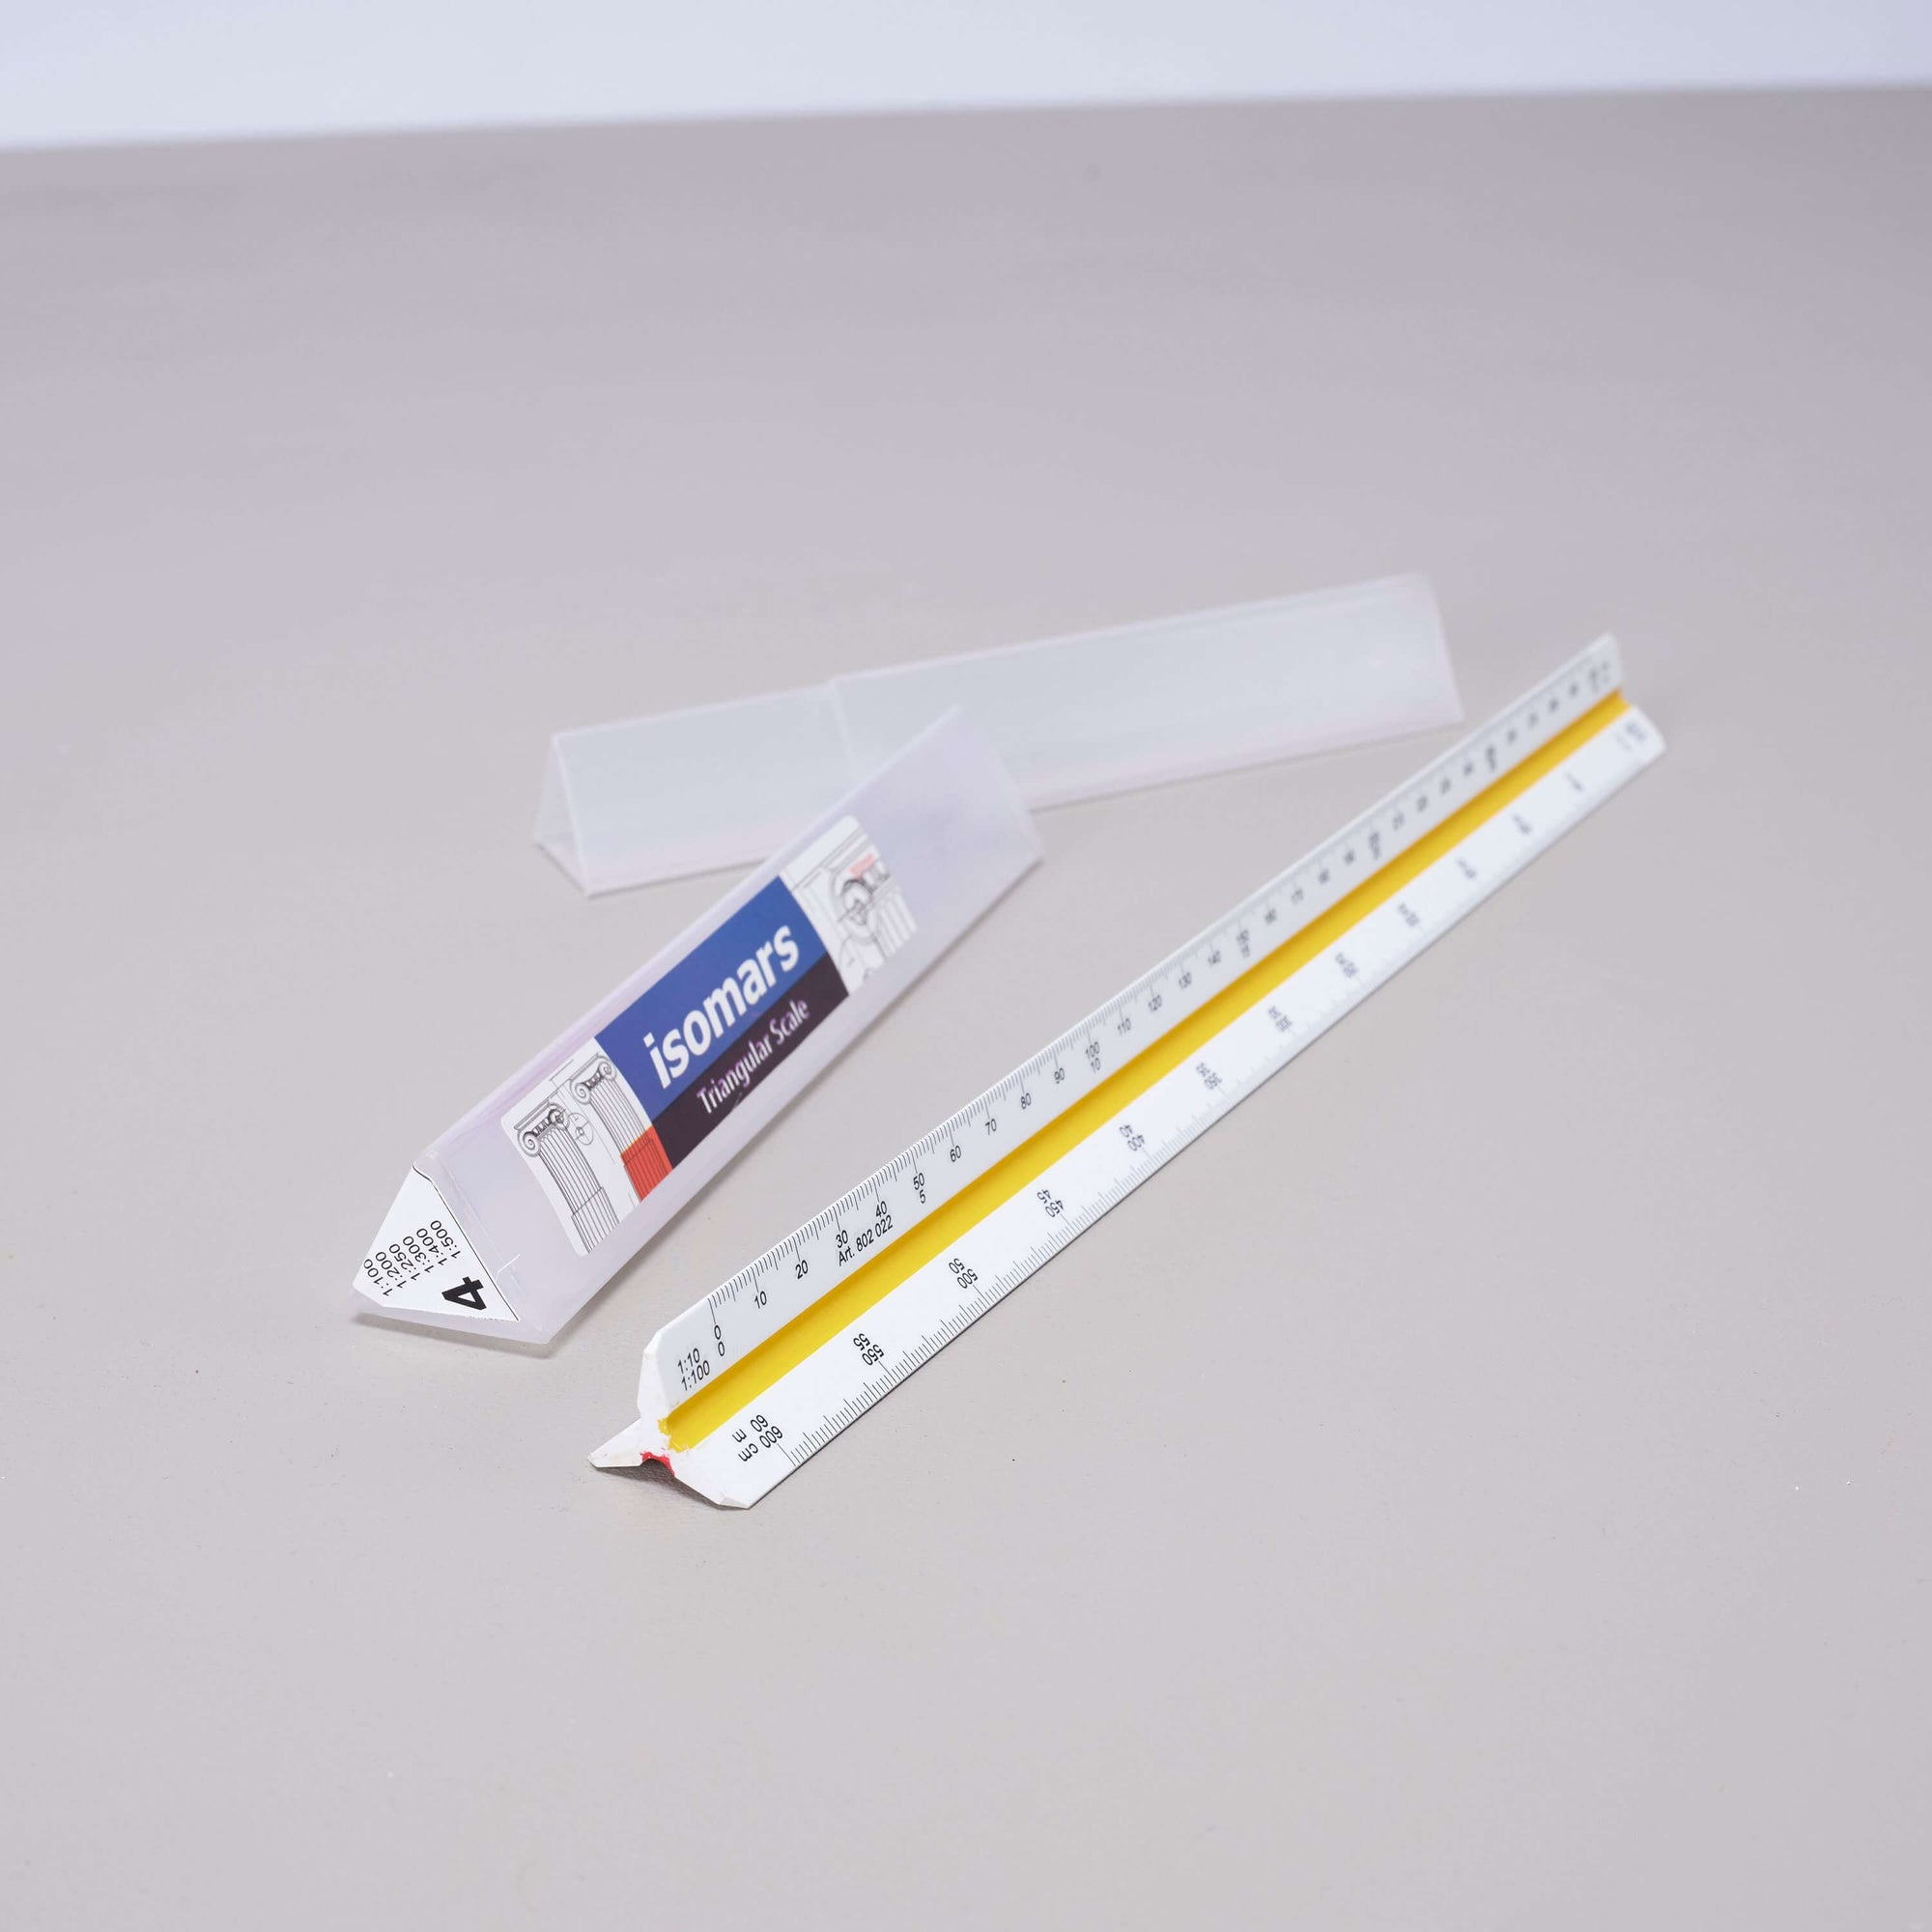 ARTdiscount ISOmars Triangular Scale Ruler - Metric - No.4